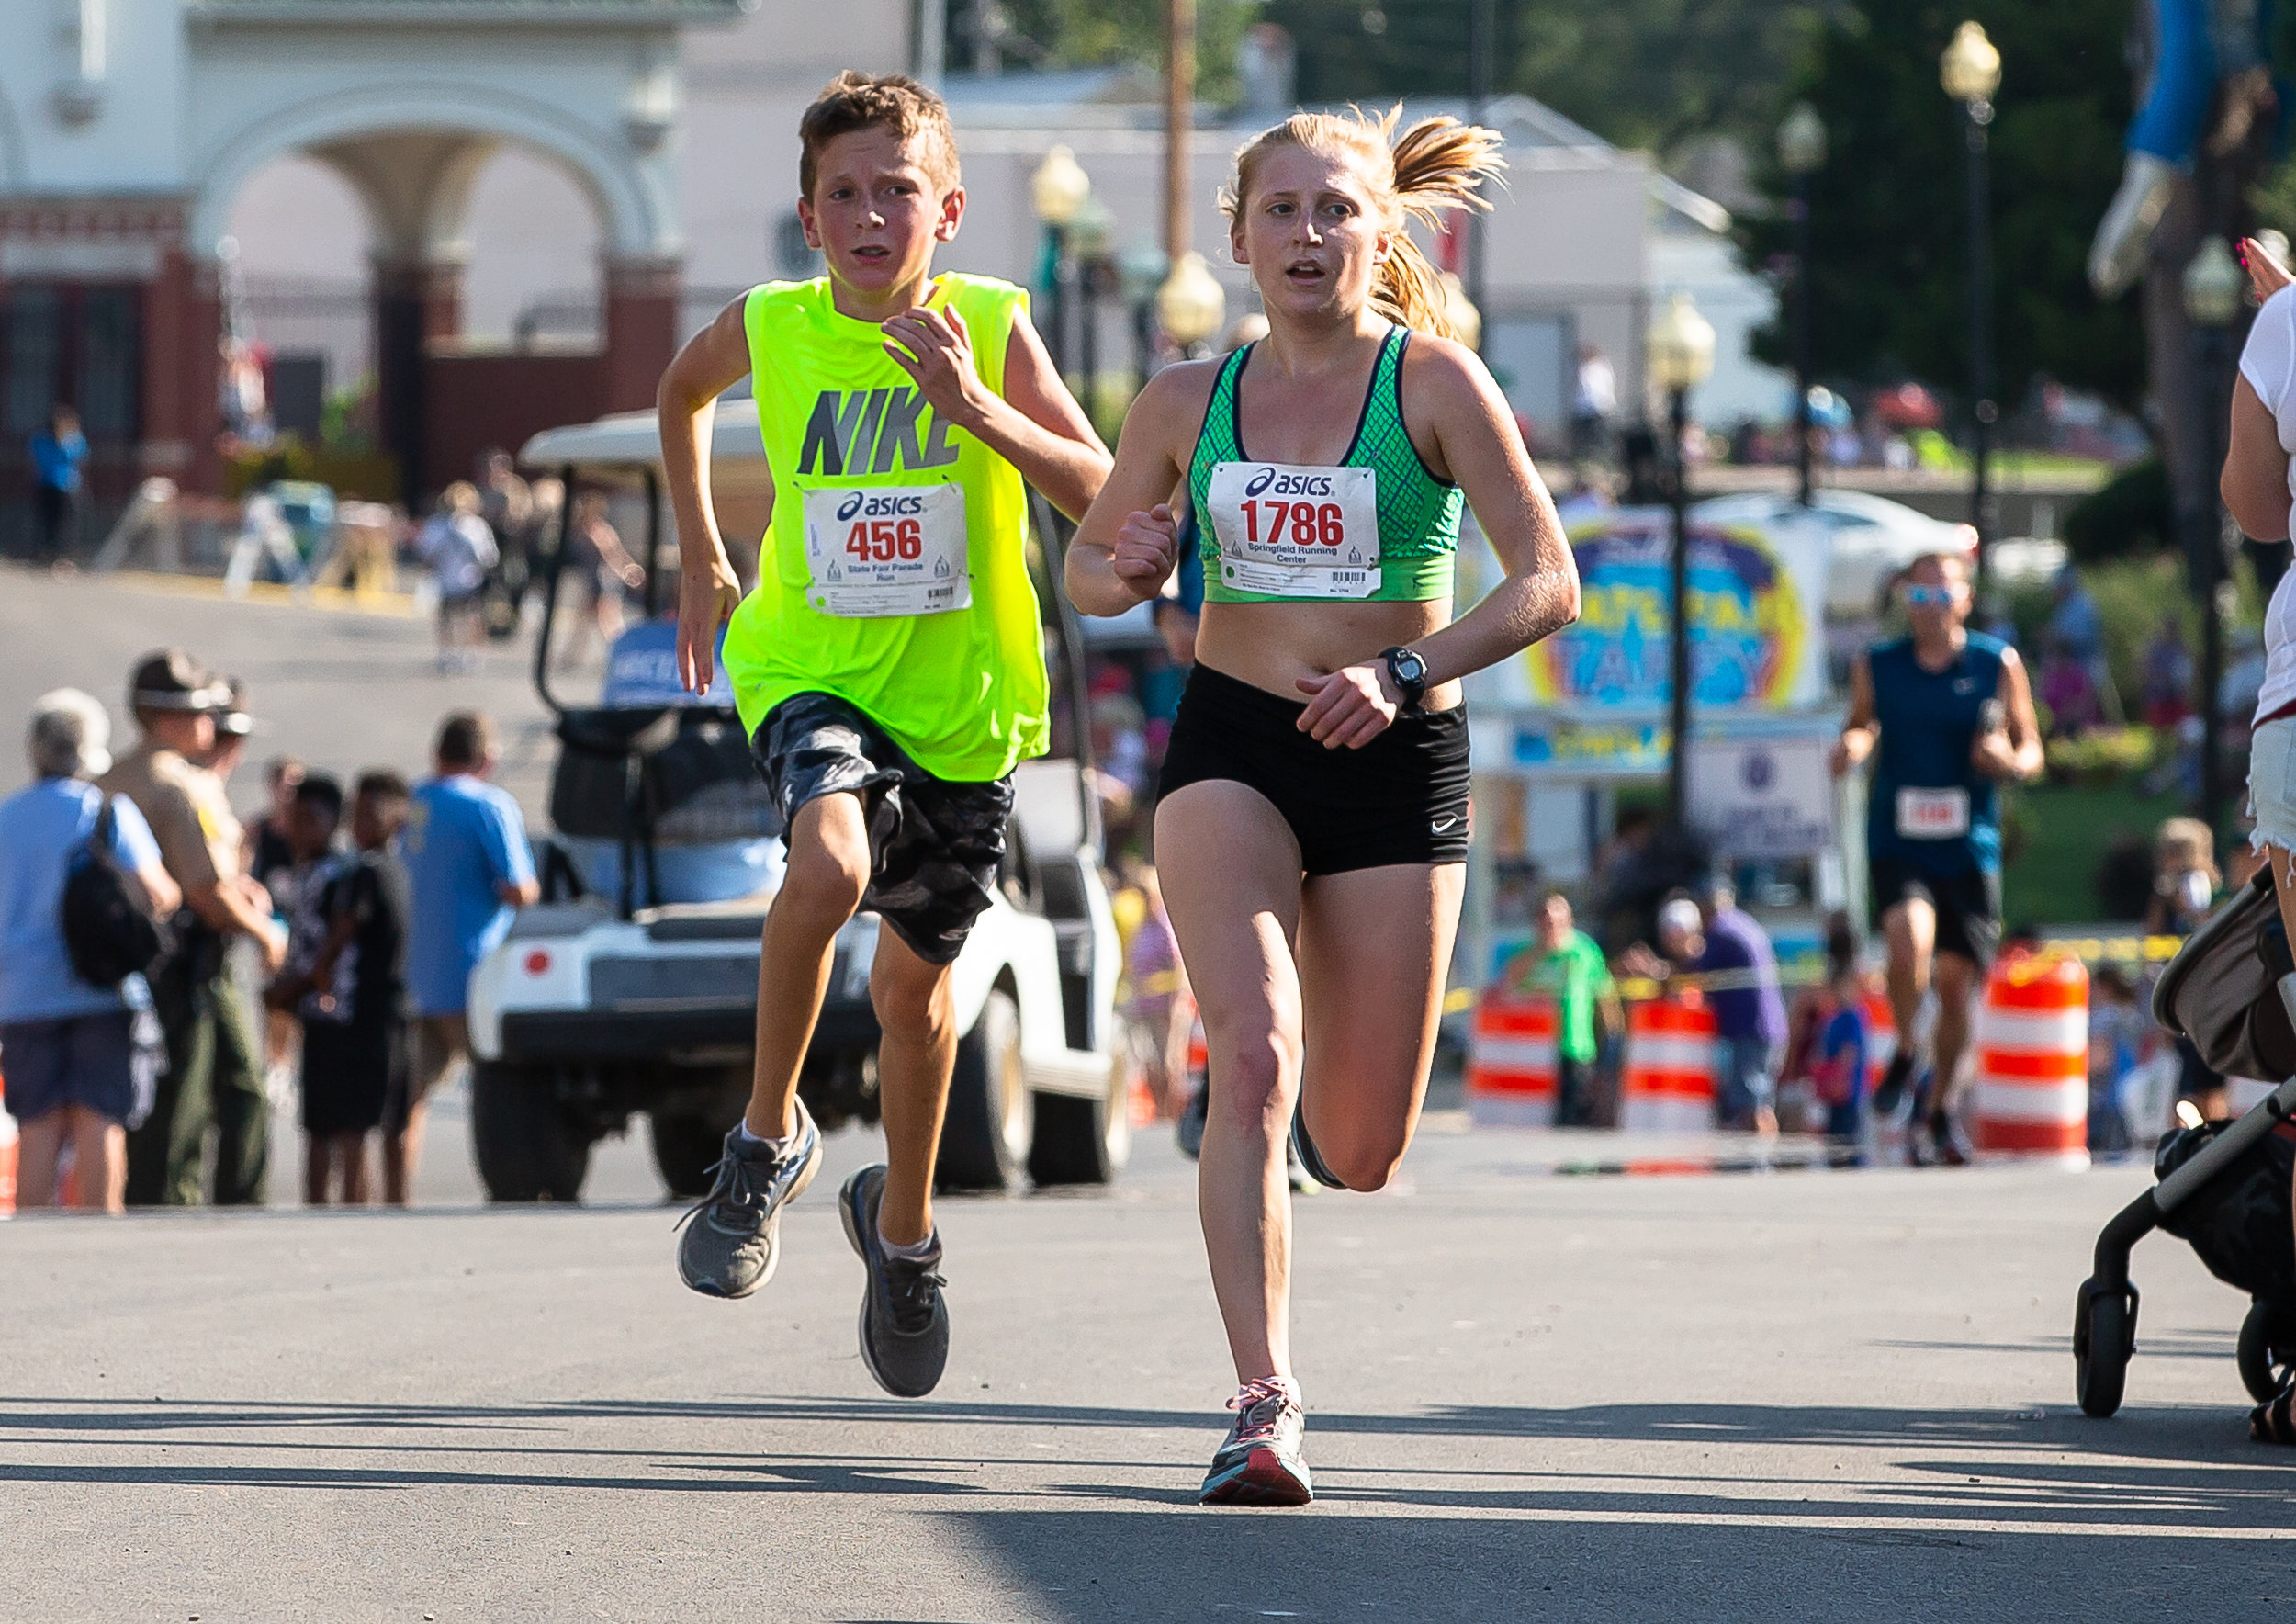 Adrienne Brauer comes to the finish line with a time of 12:08.6 to become the top female finisher in the Illinois State Fair Parade Run prior to the Illinois State Fair Twilight Parade, Thursday, Aug. 9, 2018, in Springfield, Ill. [Justin L. Fowler/The State Journal-Register]